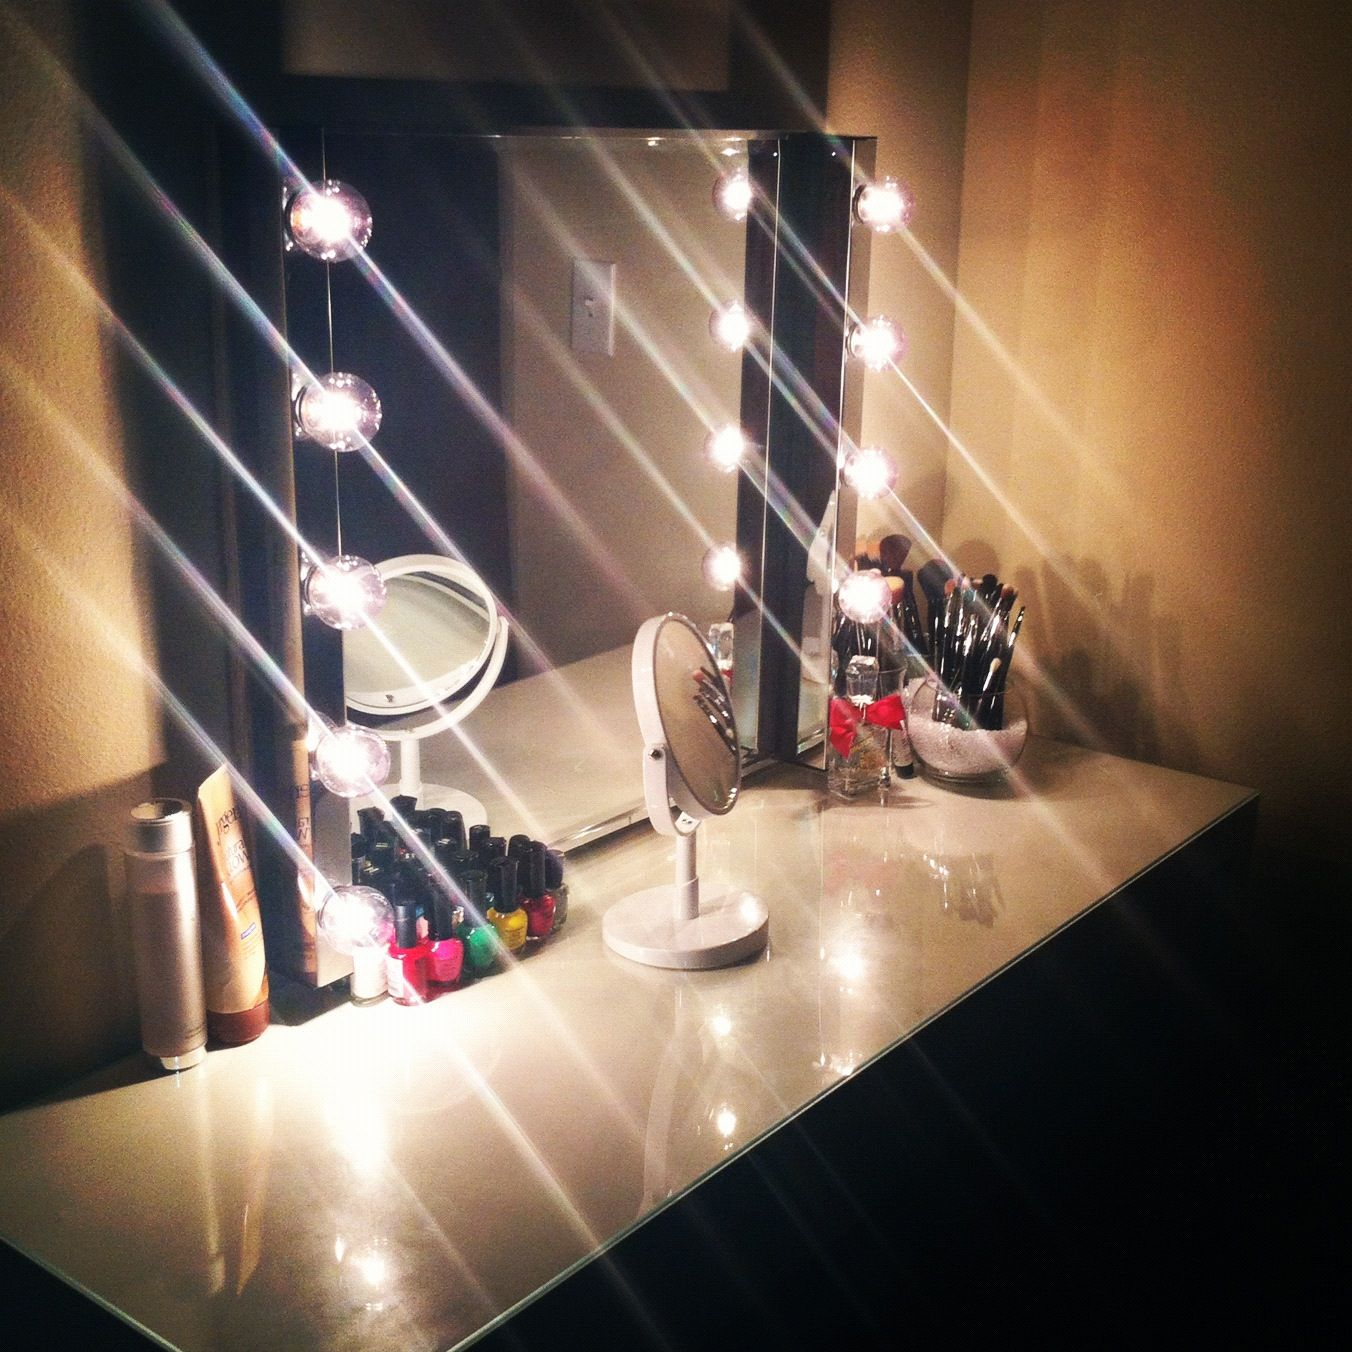 Dressing table mirrors with lights vanity  the malm dressing table from ikea and the musik lights